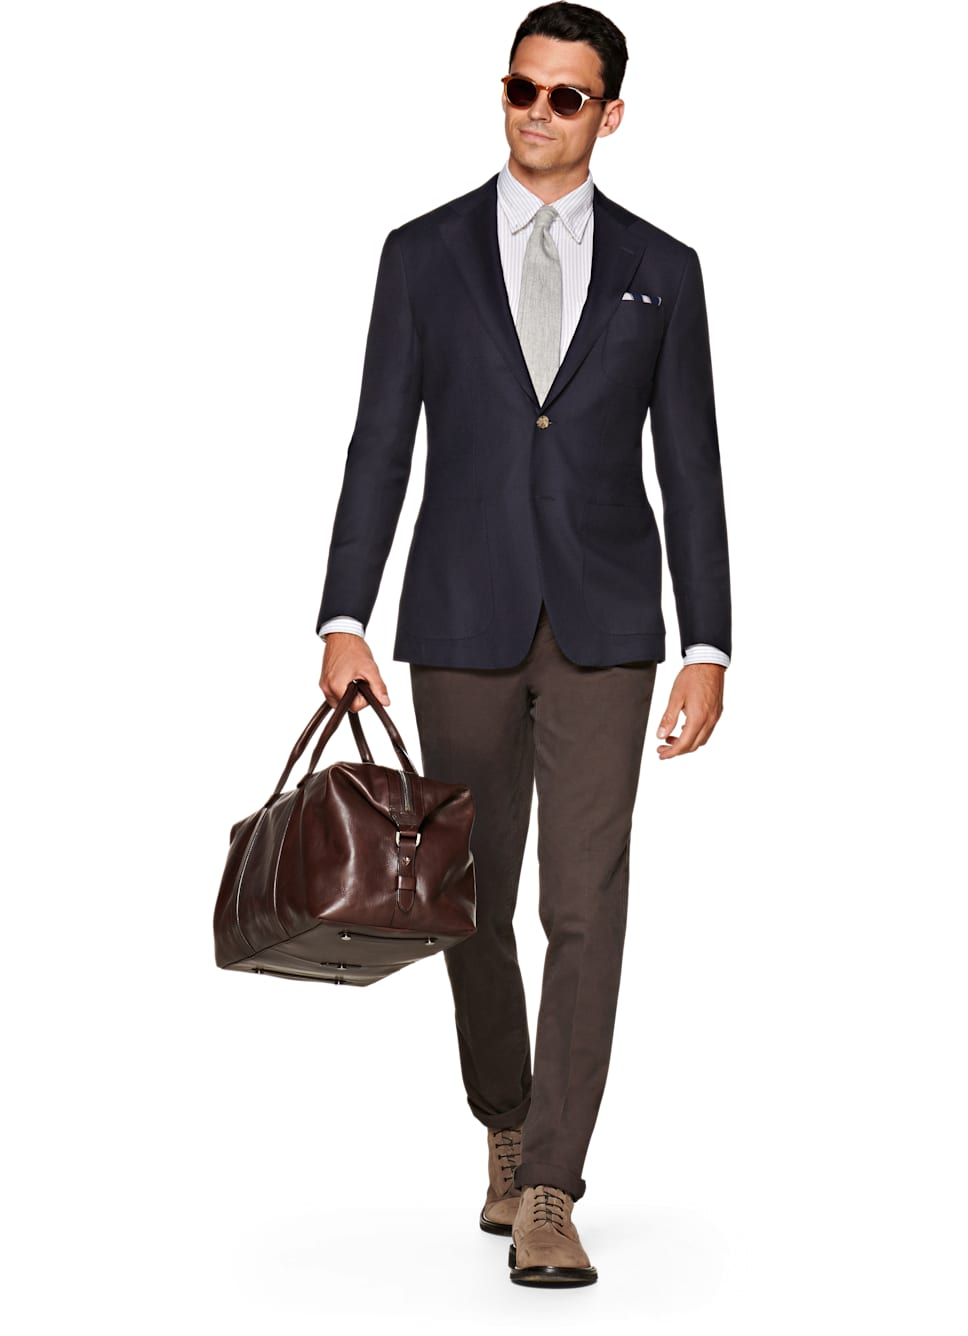 Suit Supply Sport Coat